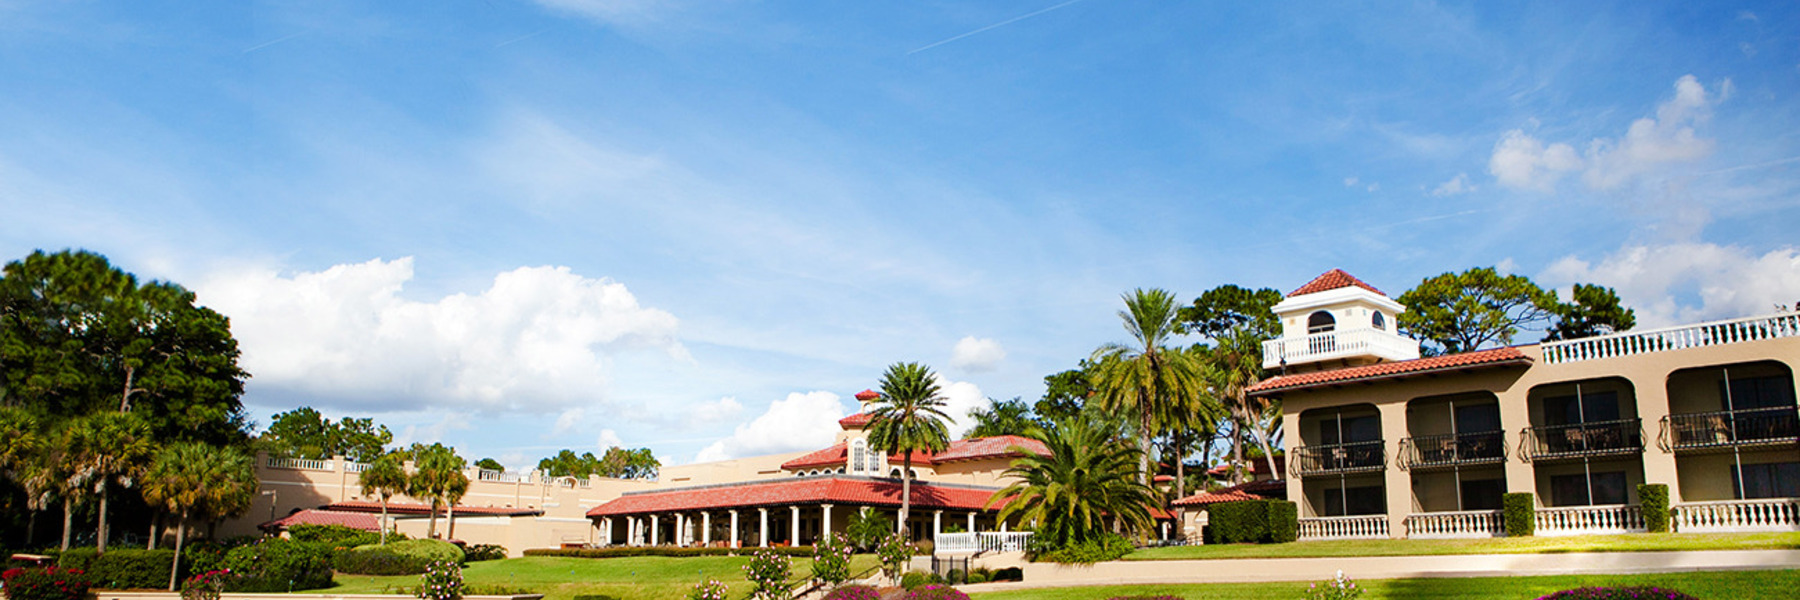 Golf Vacation Package - Historic Mission Inn Resort - Golf Stay & Play for $189 per person, per day!